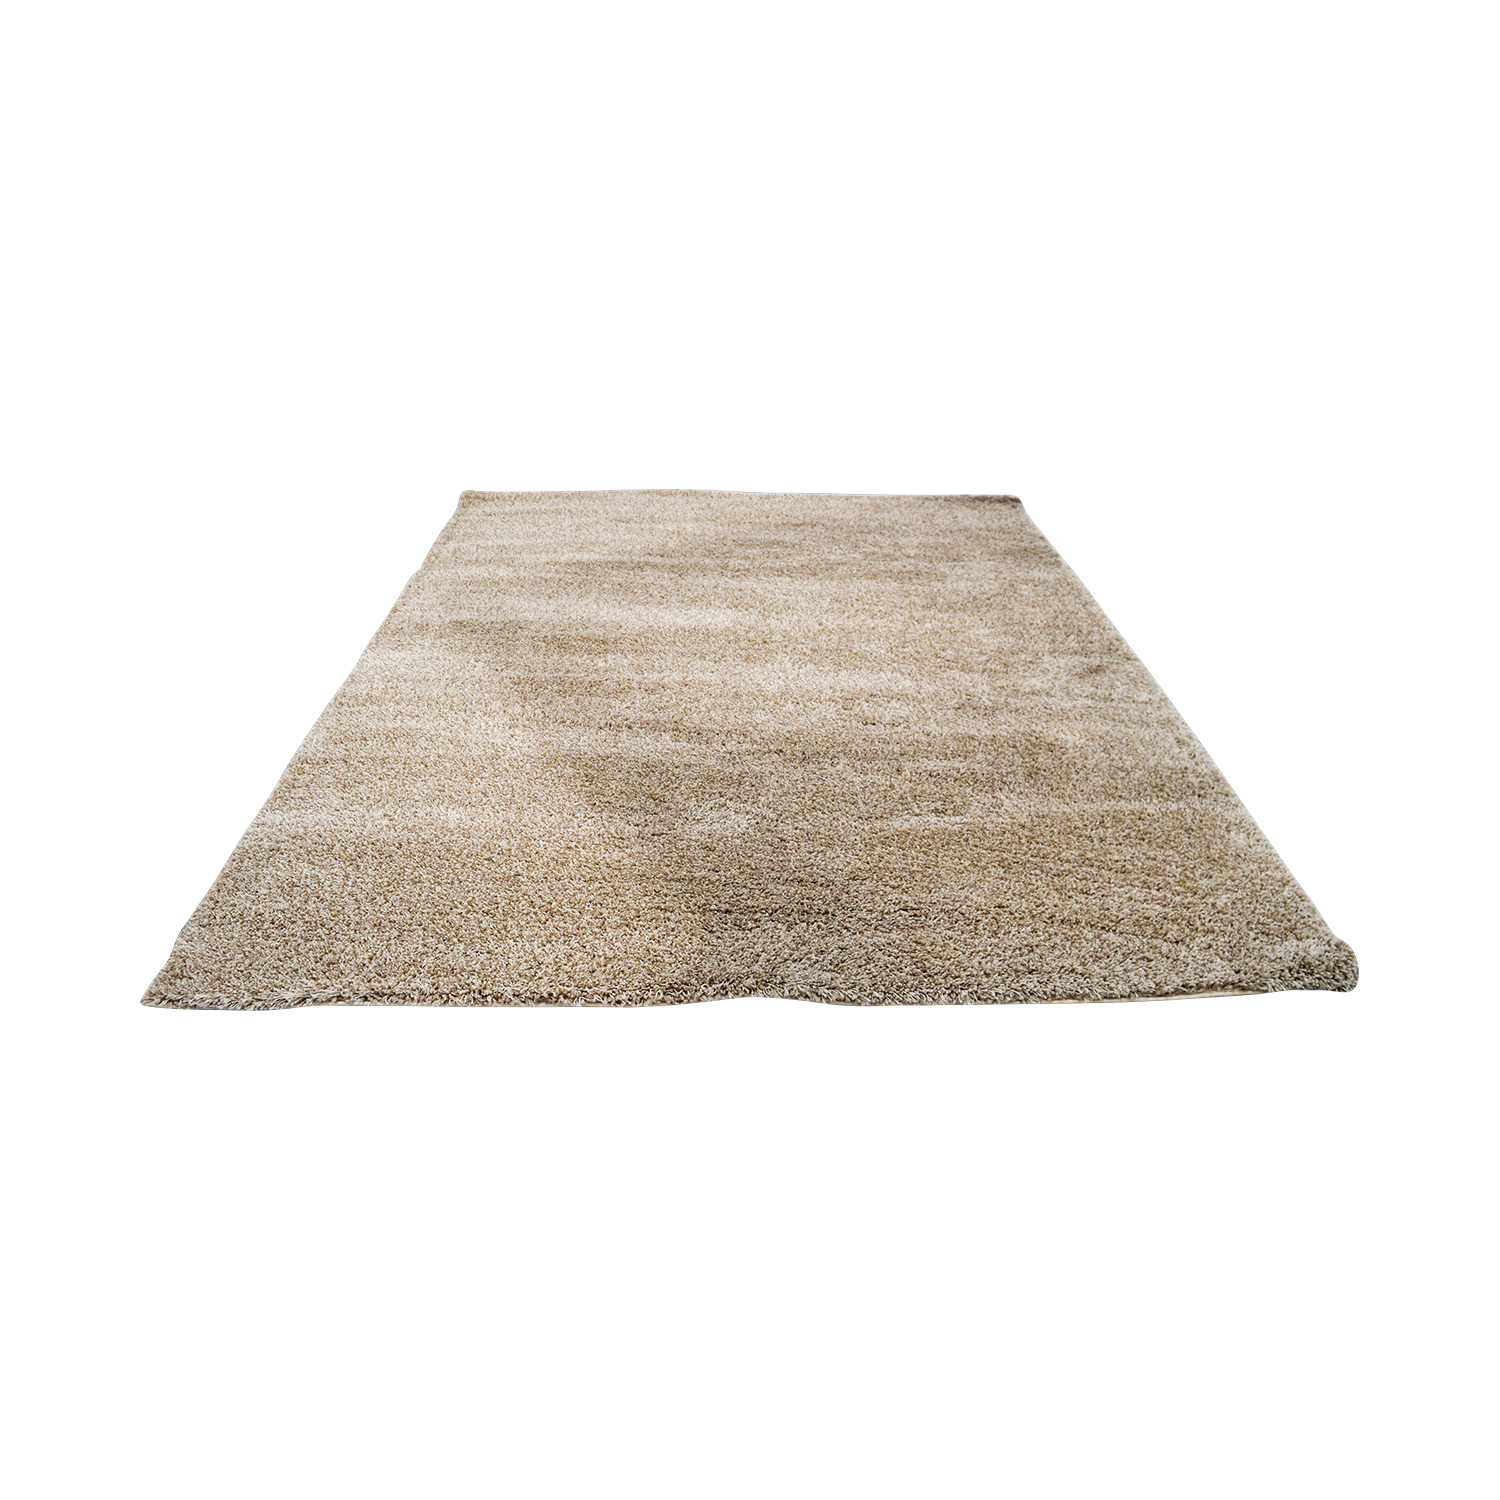 Savavieh Savavieh Braided Beige Rectangle Rug BEIGE